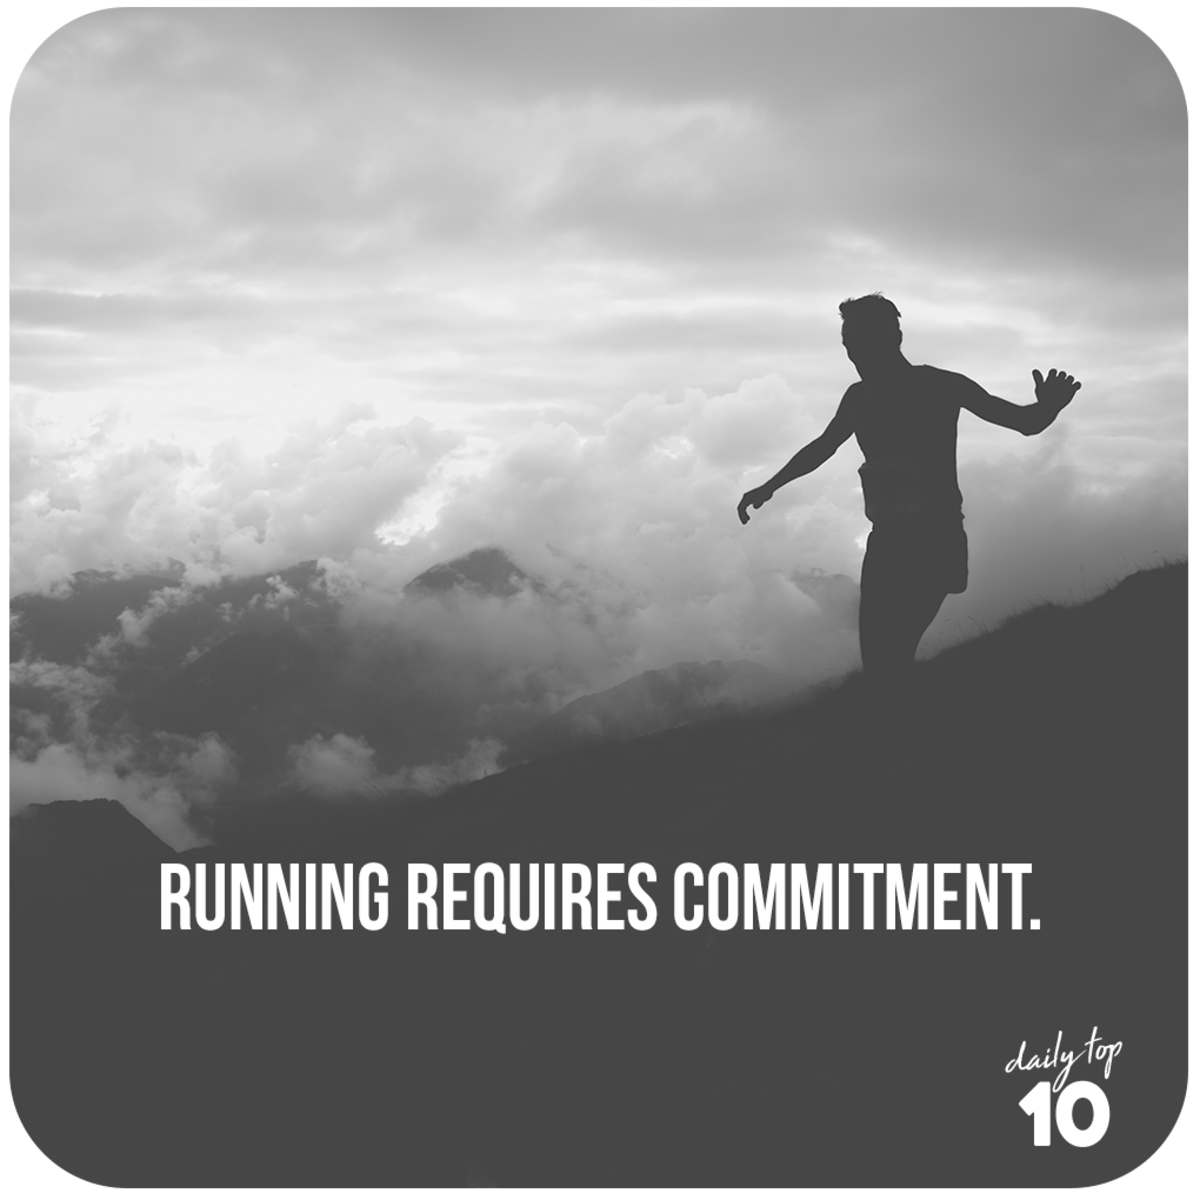 Running requires commitment.